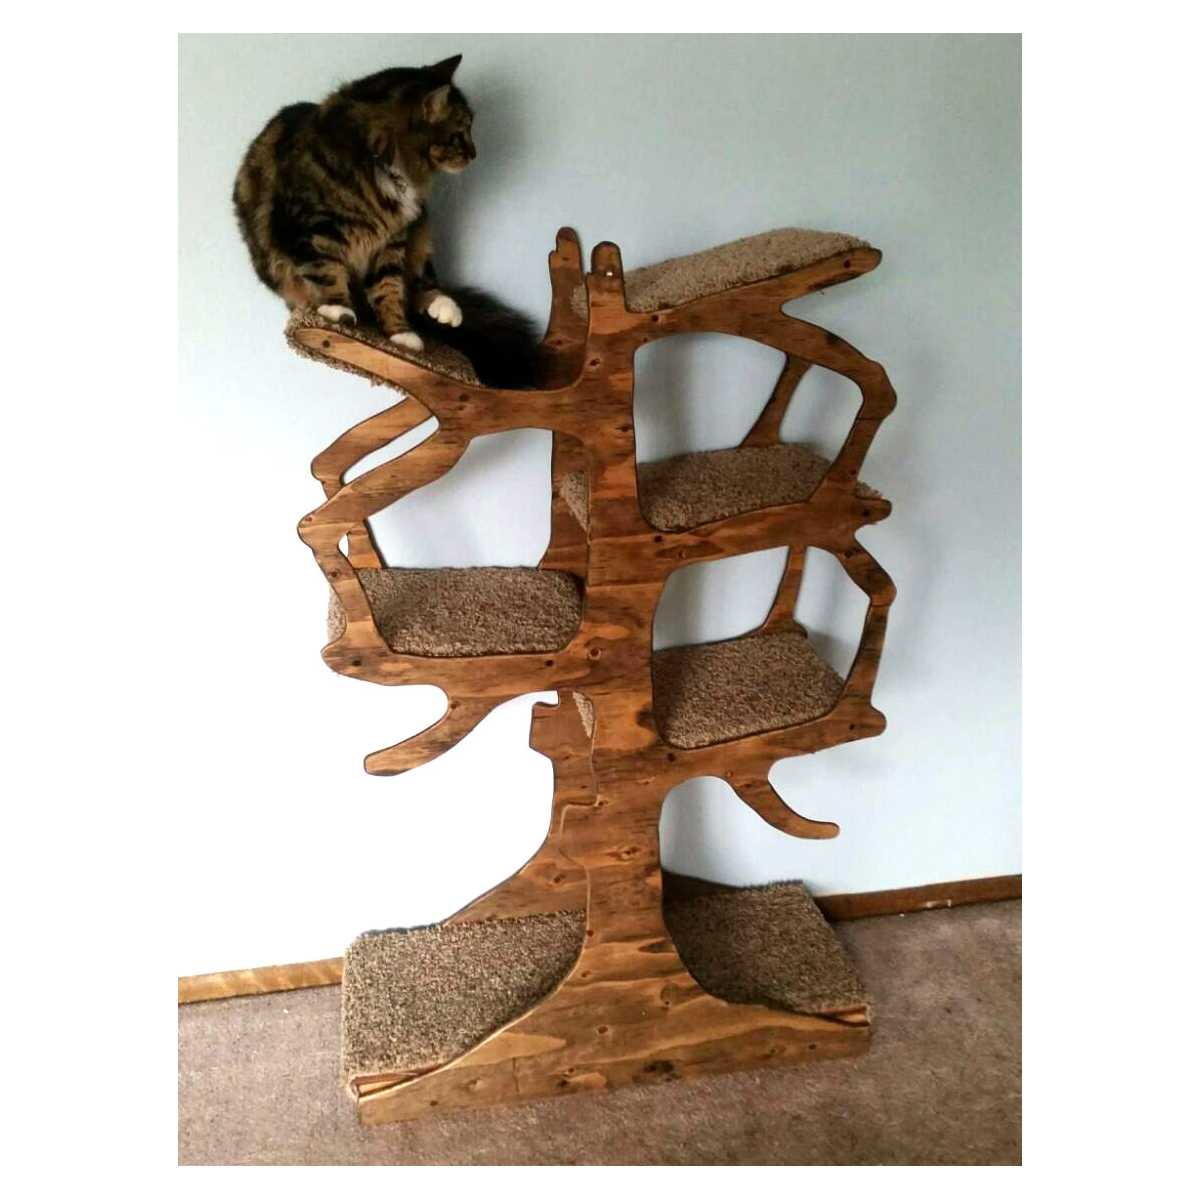 Unique Handmade Wooden Cat Tree With Carpeted Branches Black or Natural